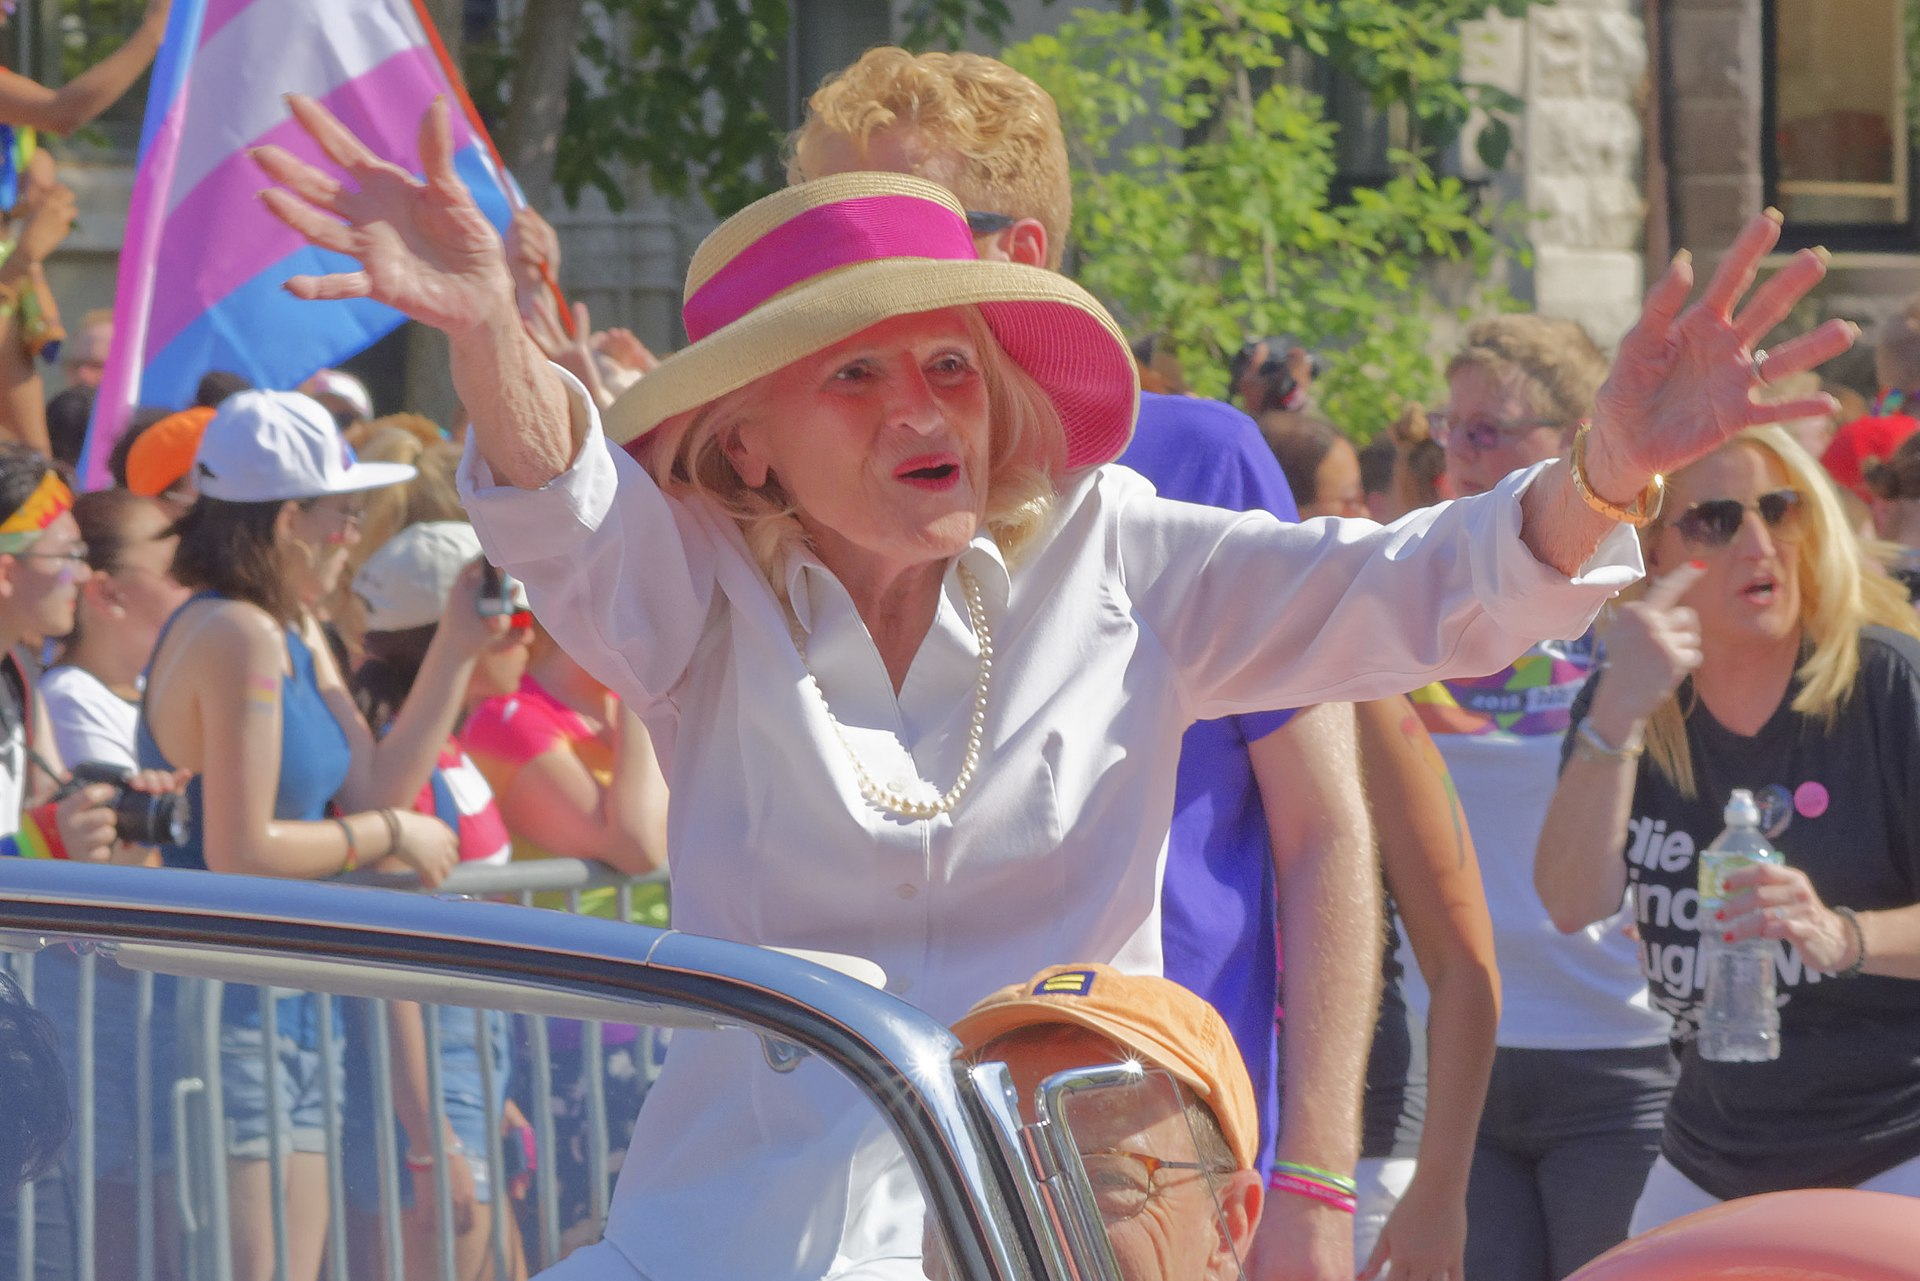 LGBTQ hero Edith Windsor celebrated in moving service